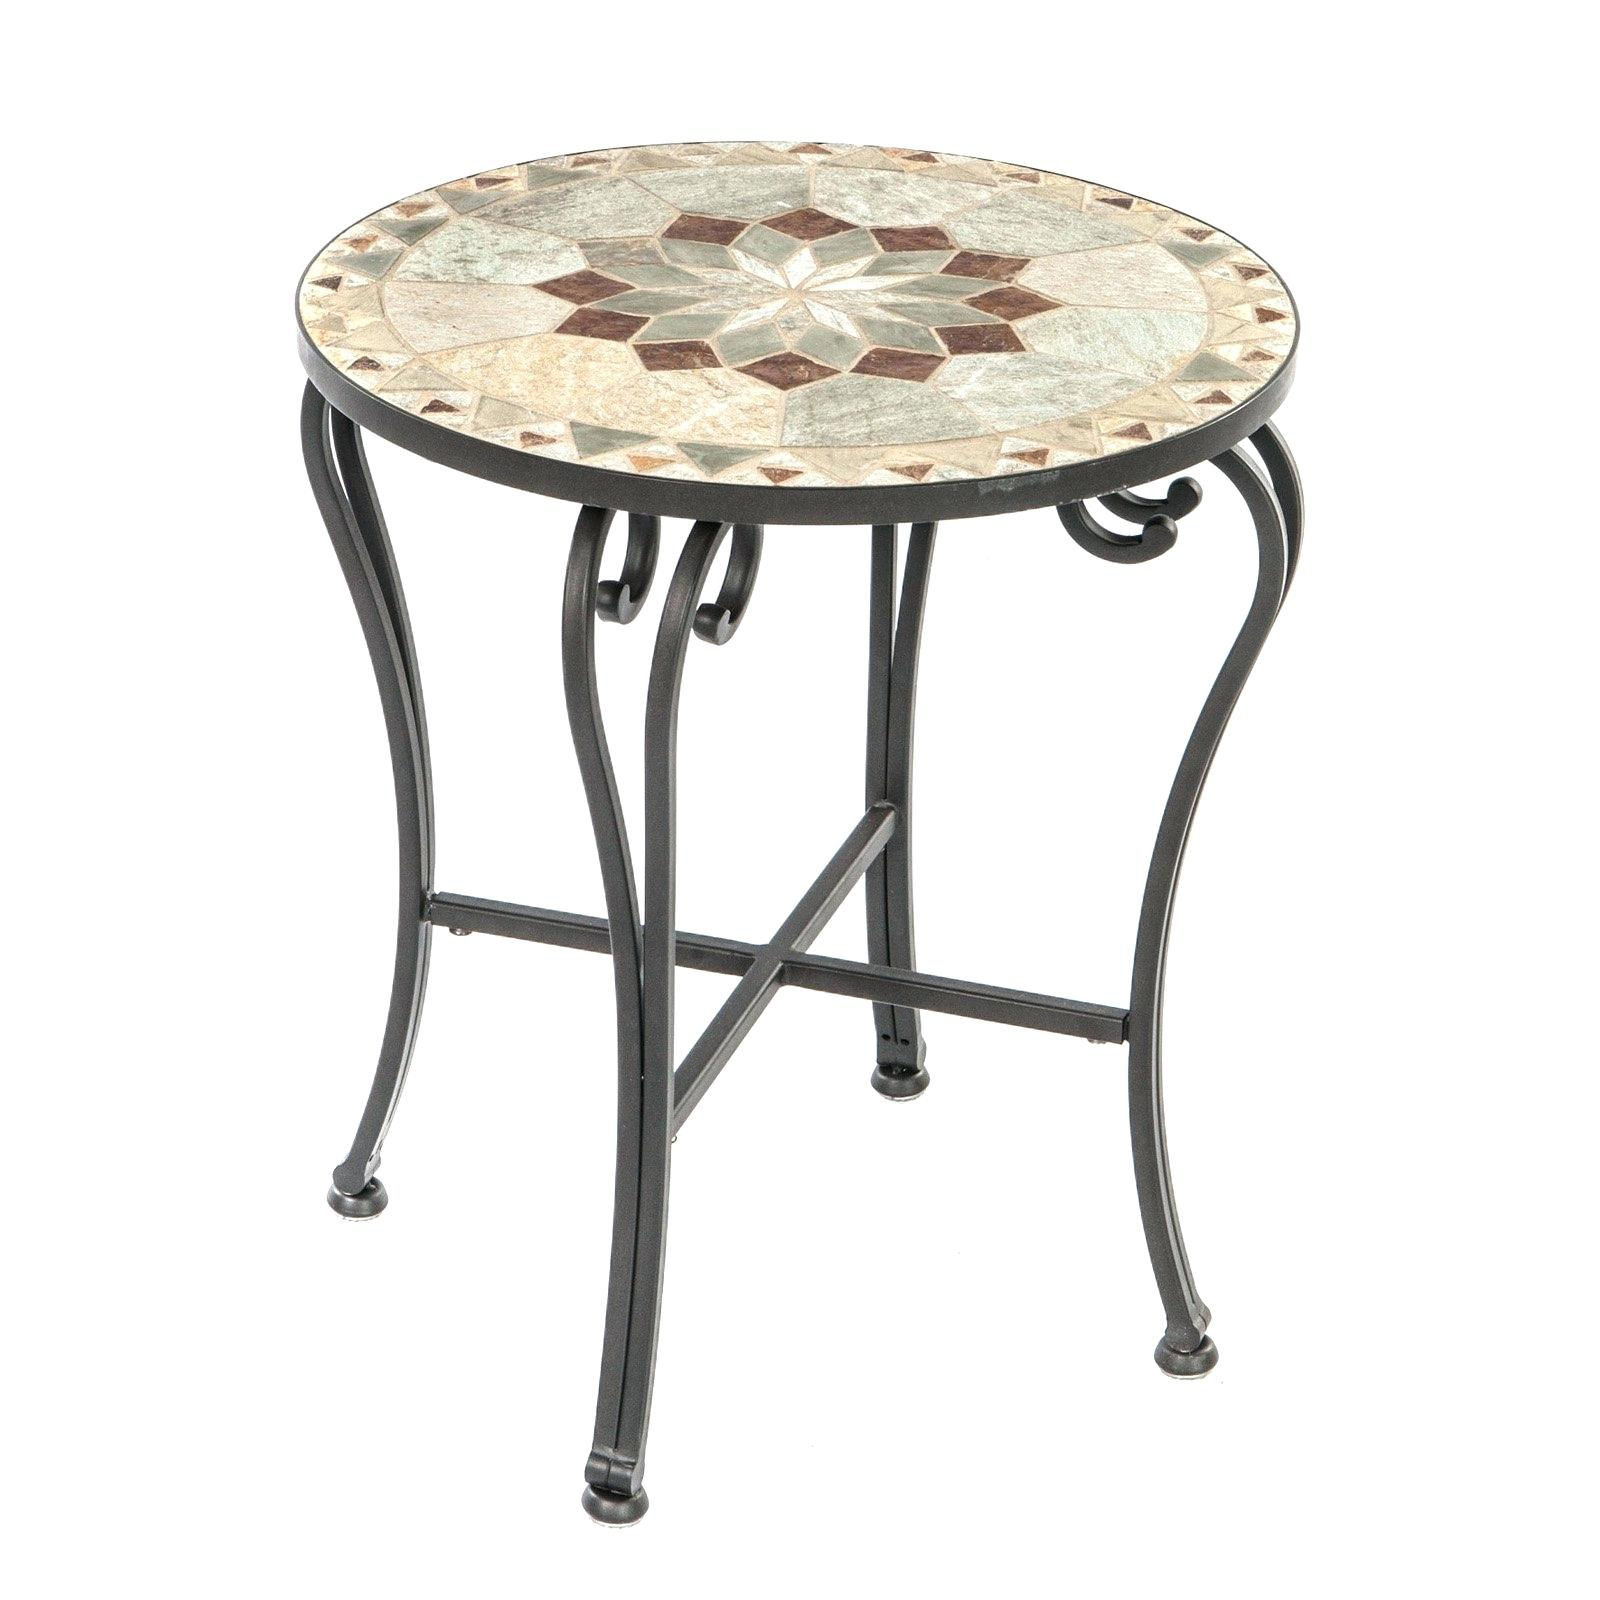 patio accent tables dame mosaic side table jcpenney quilts gooseneck lamp reclaimed wood sofa metal home decor antique style nite stands furniture round tiffany glassware led